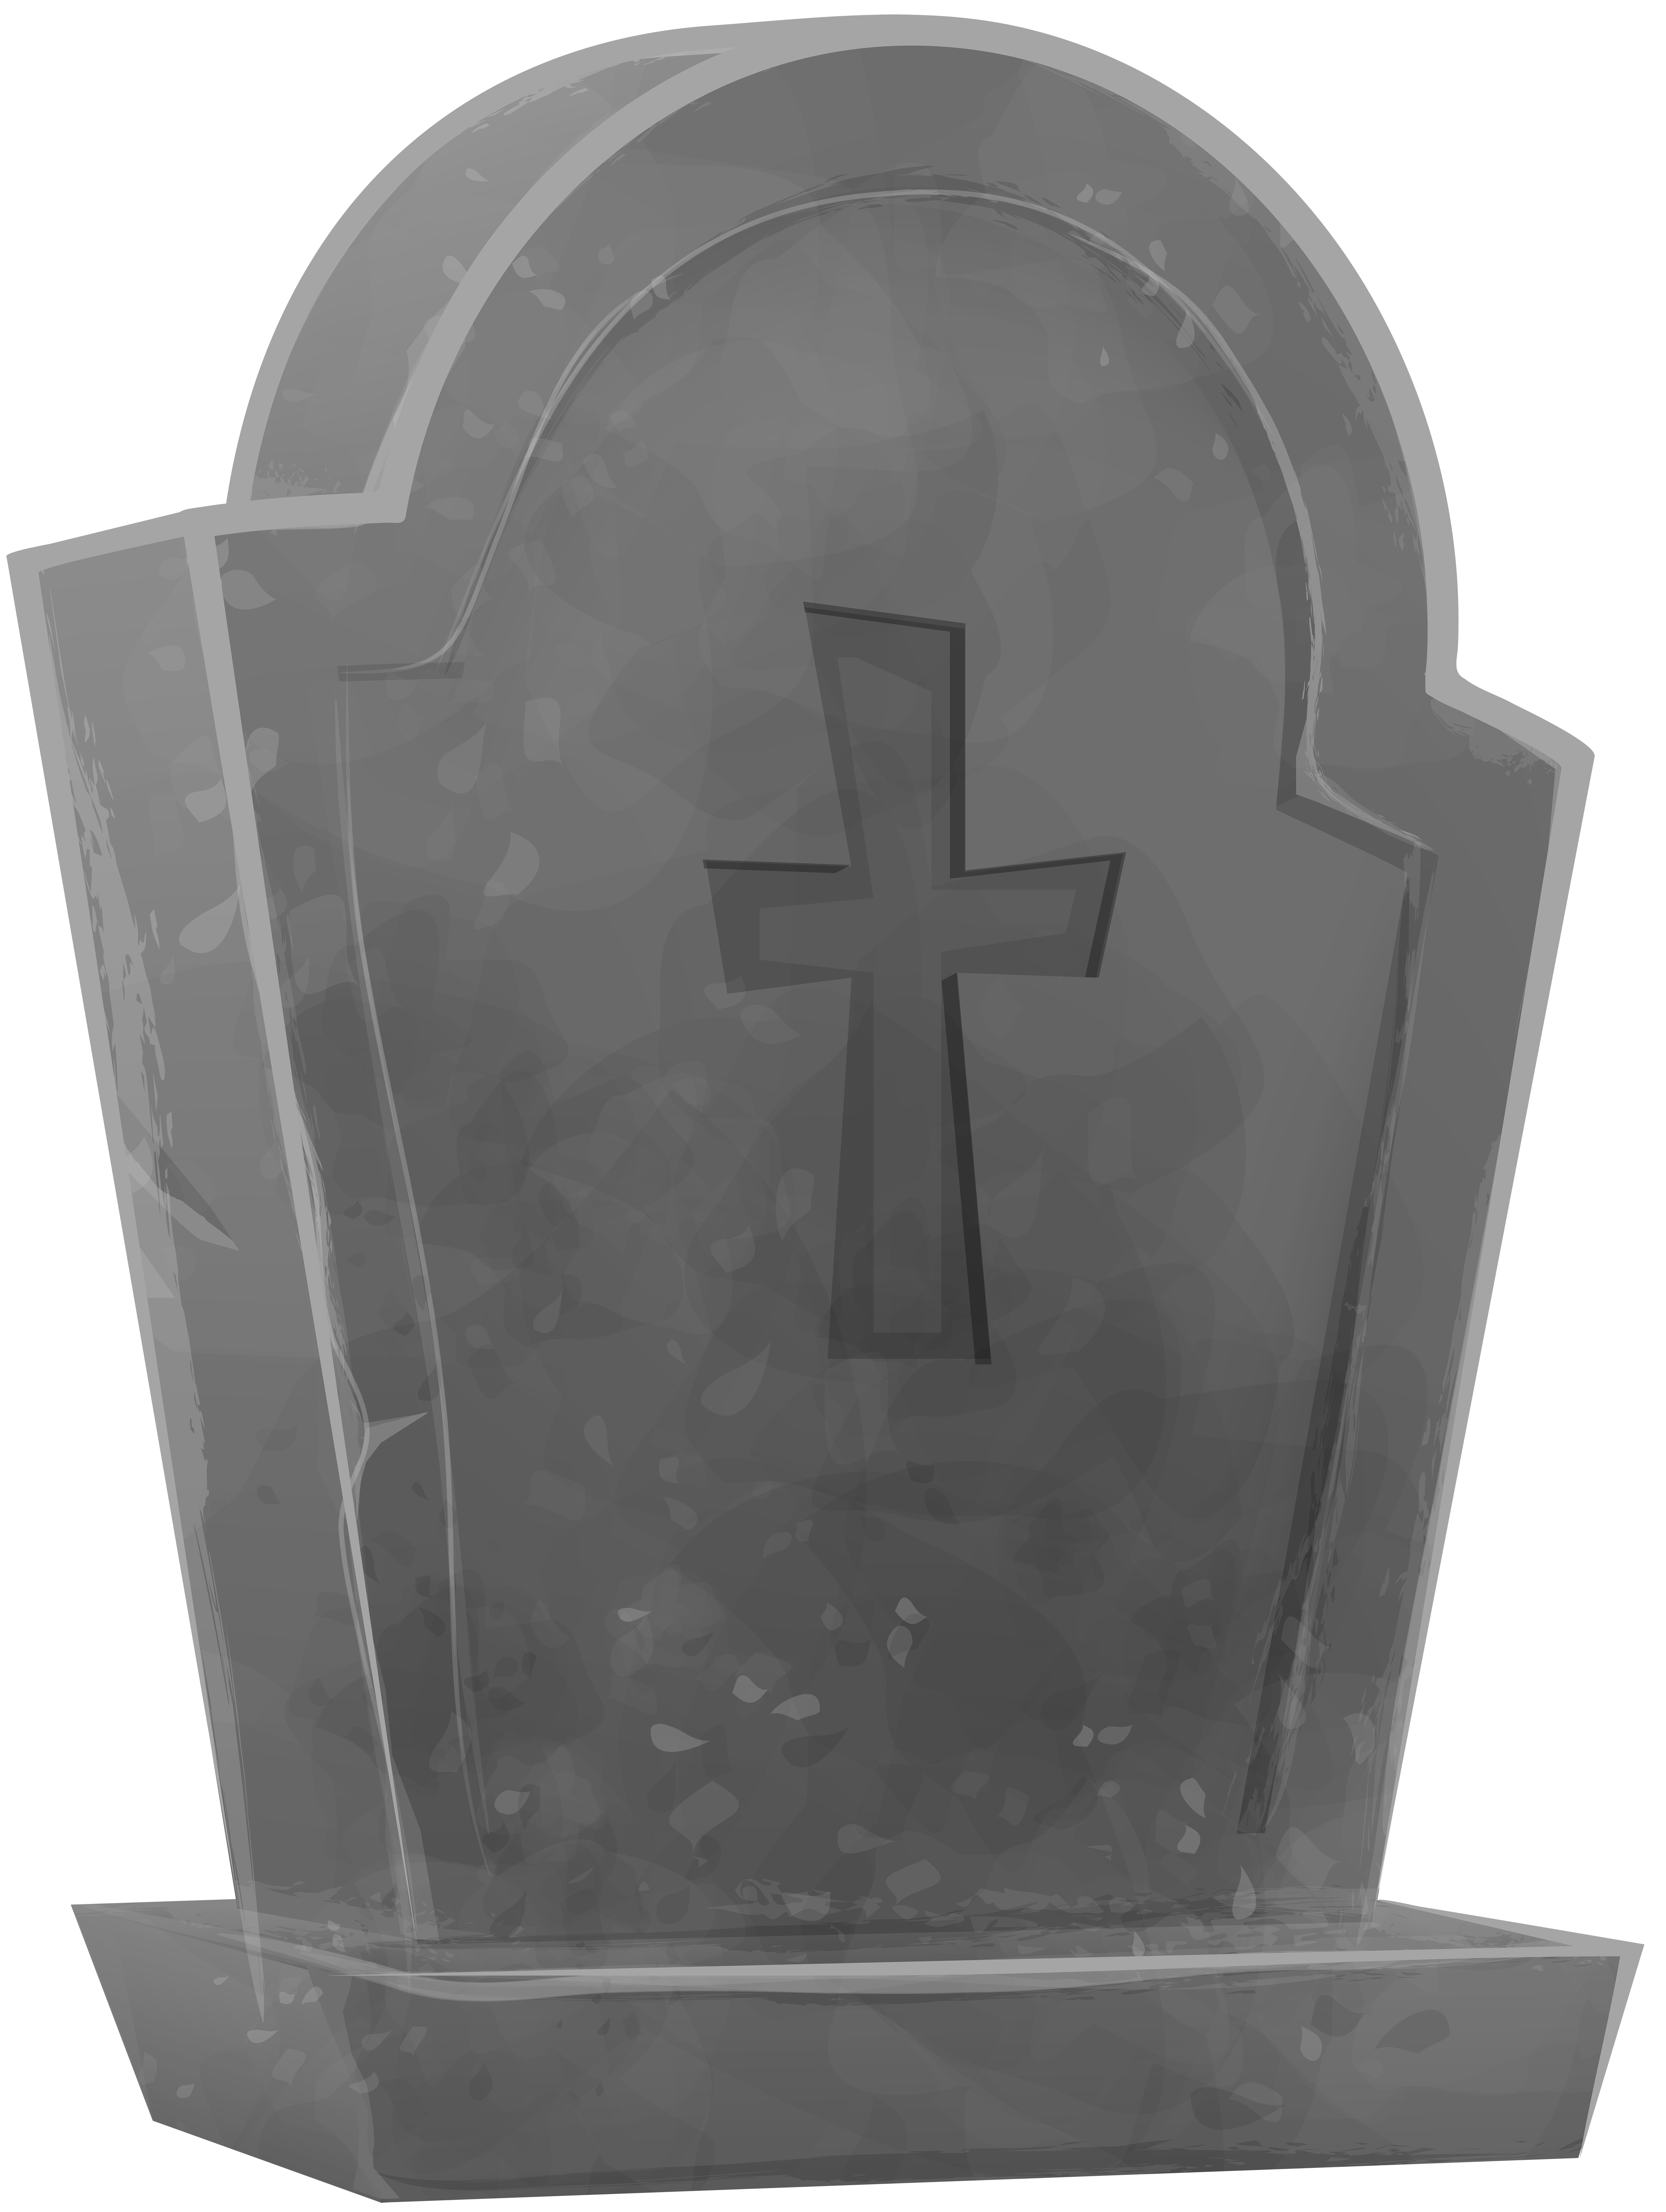 Halloween tombstone png. Rip clip art image